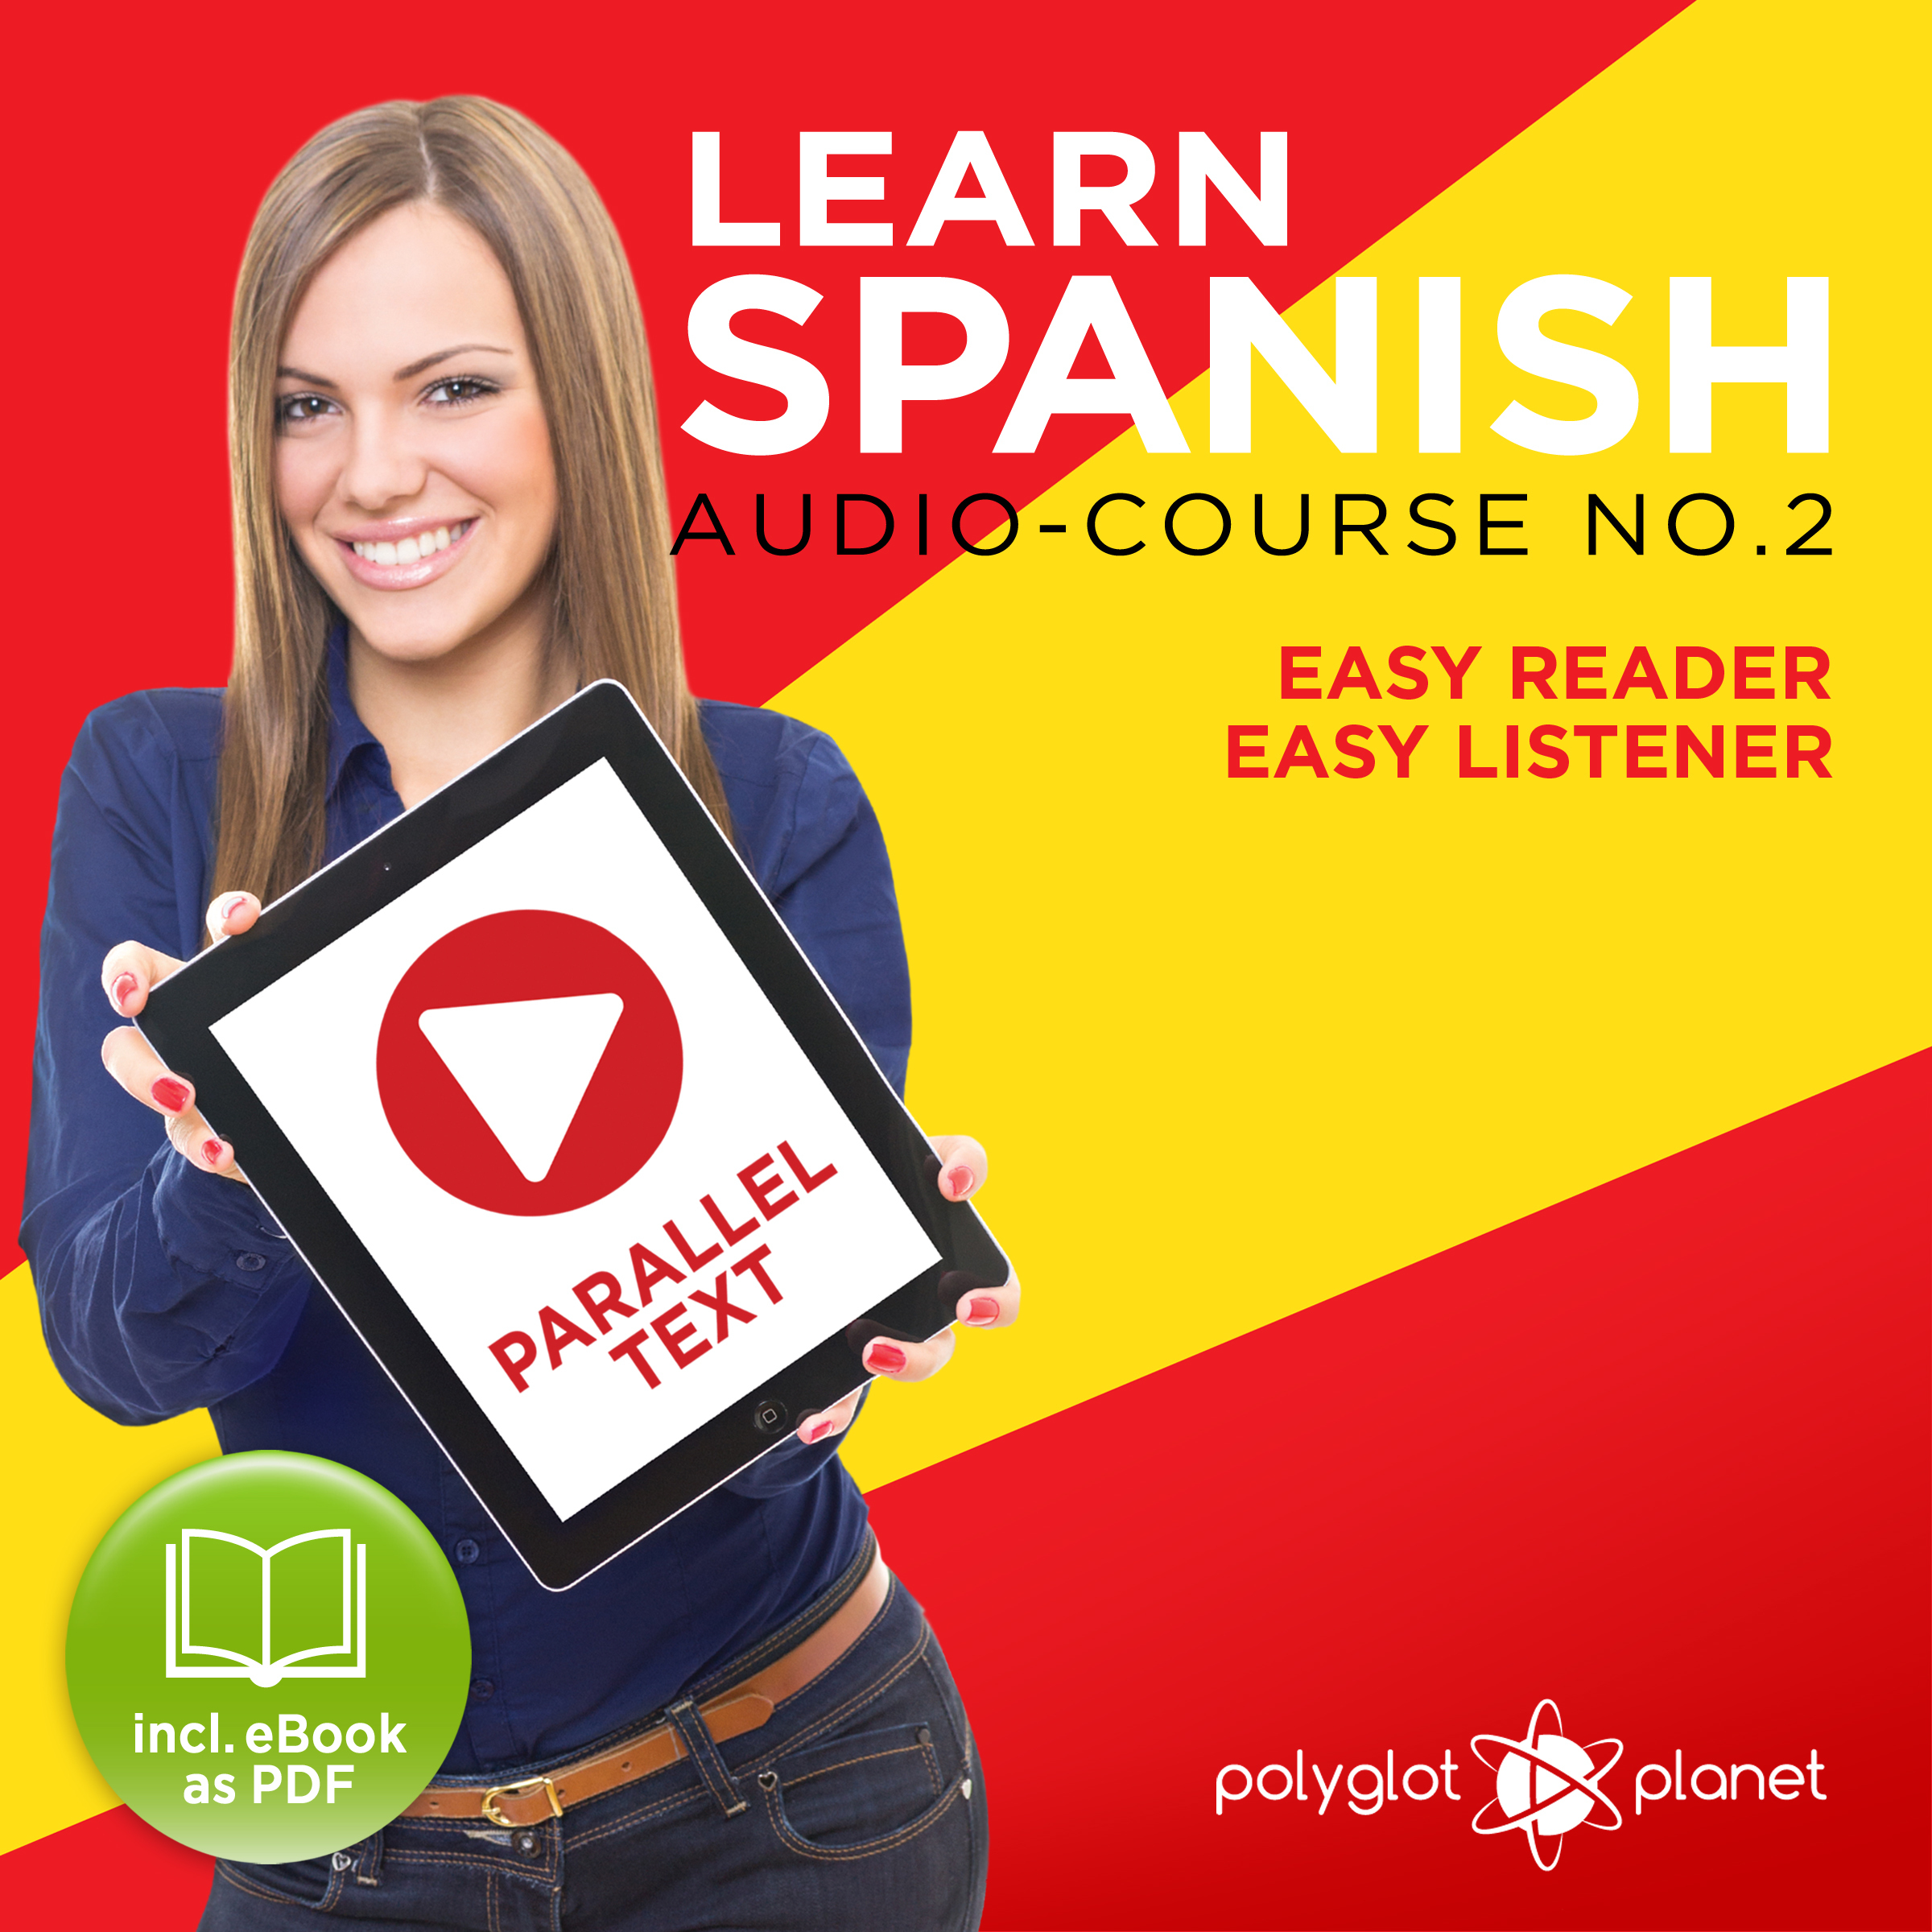 Printable Learn Spanish - Easy Reader - Easy Listener - Parallel Text Spanish Audio Course No. 2 - The Spanish Easy Reader - Easy Audio Learning Course Audiobook Cover Art